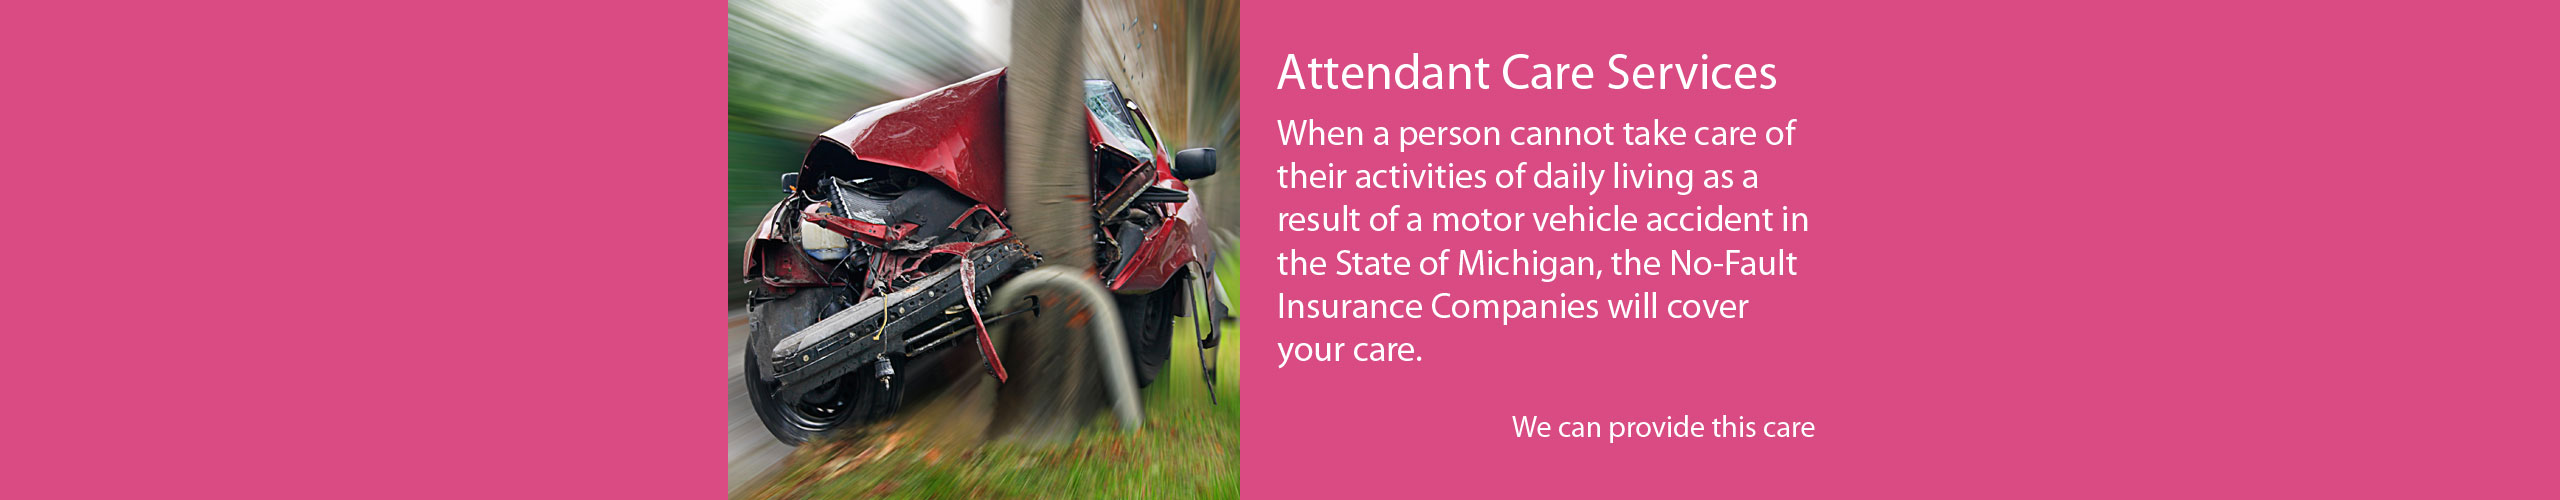 Attendant Care Services after an Motor Vehicle Accident